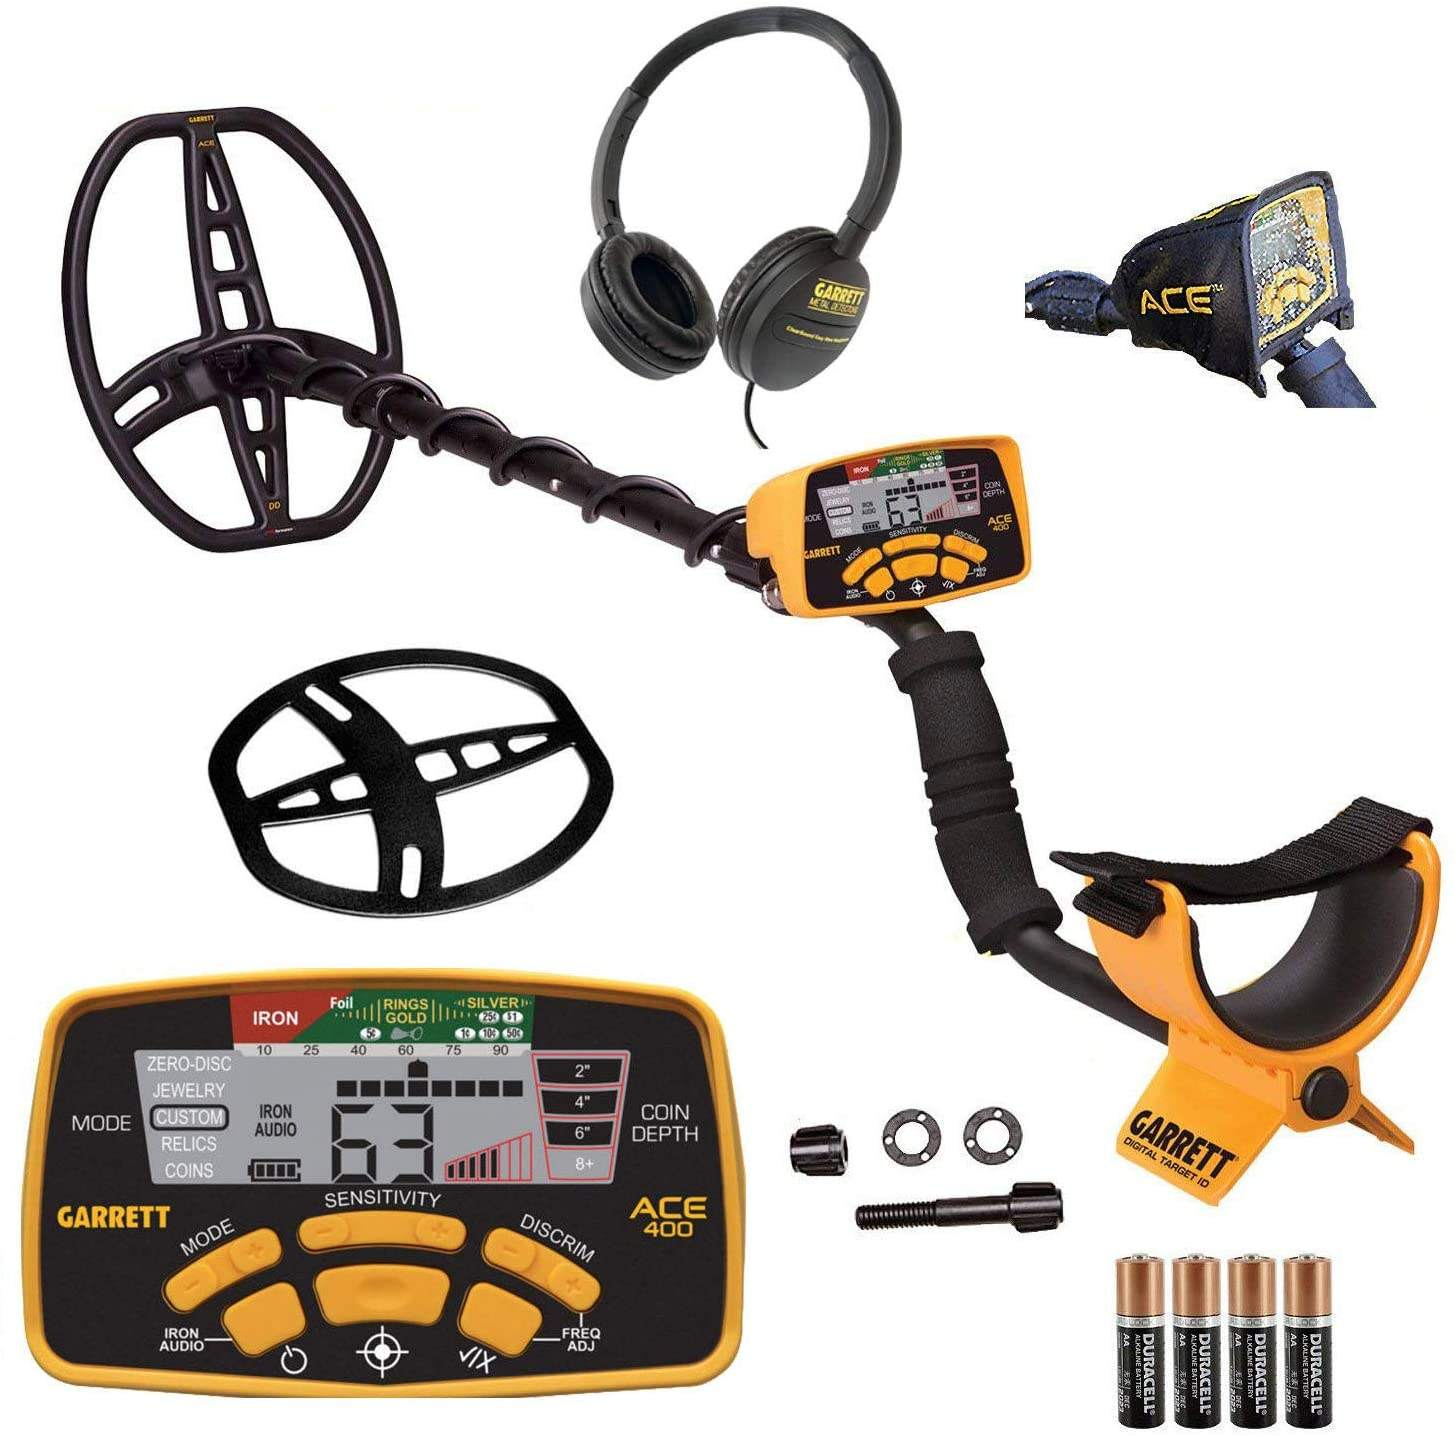 Garretts Ace 400 Metal Detector with Waterproof Coil and Headphone Plus Accessories